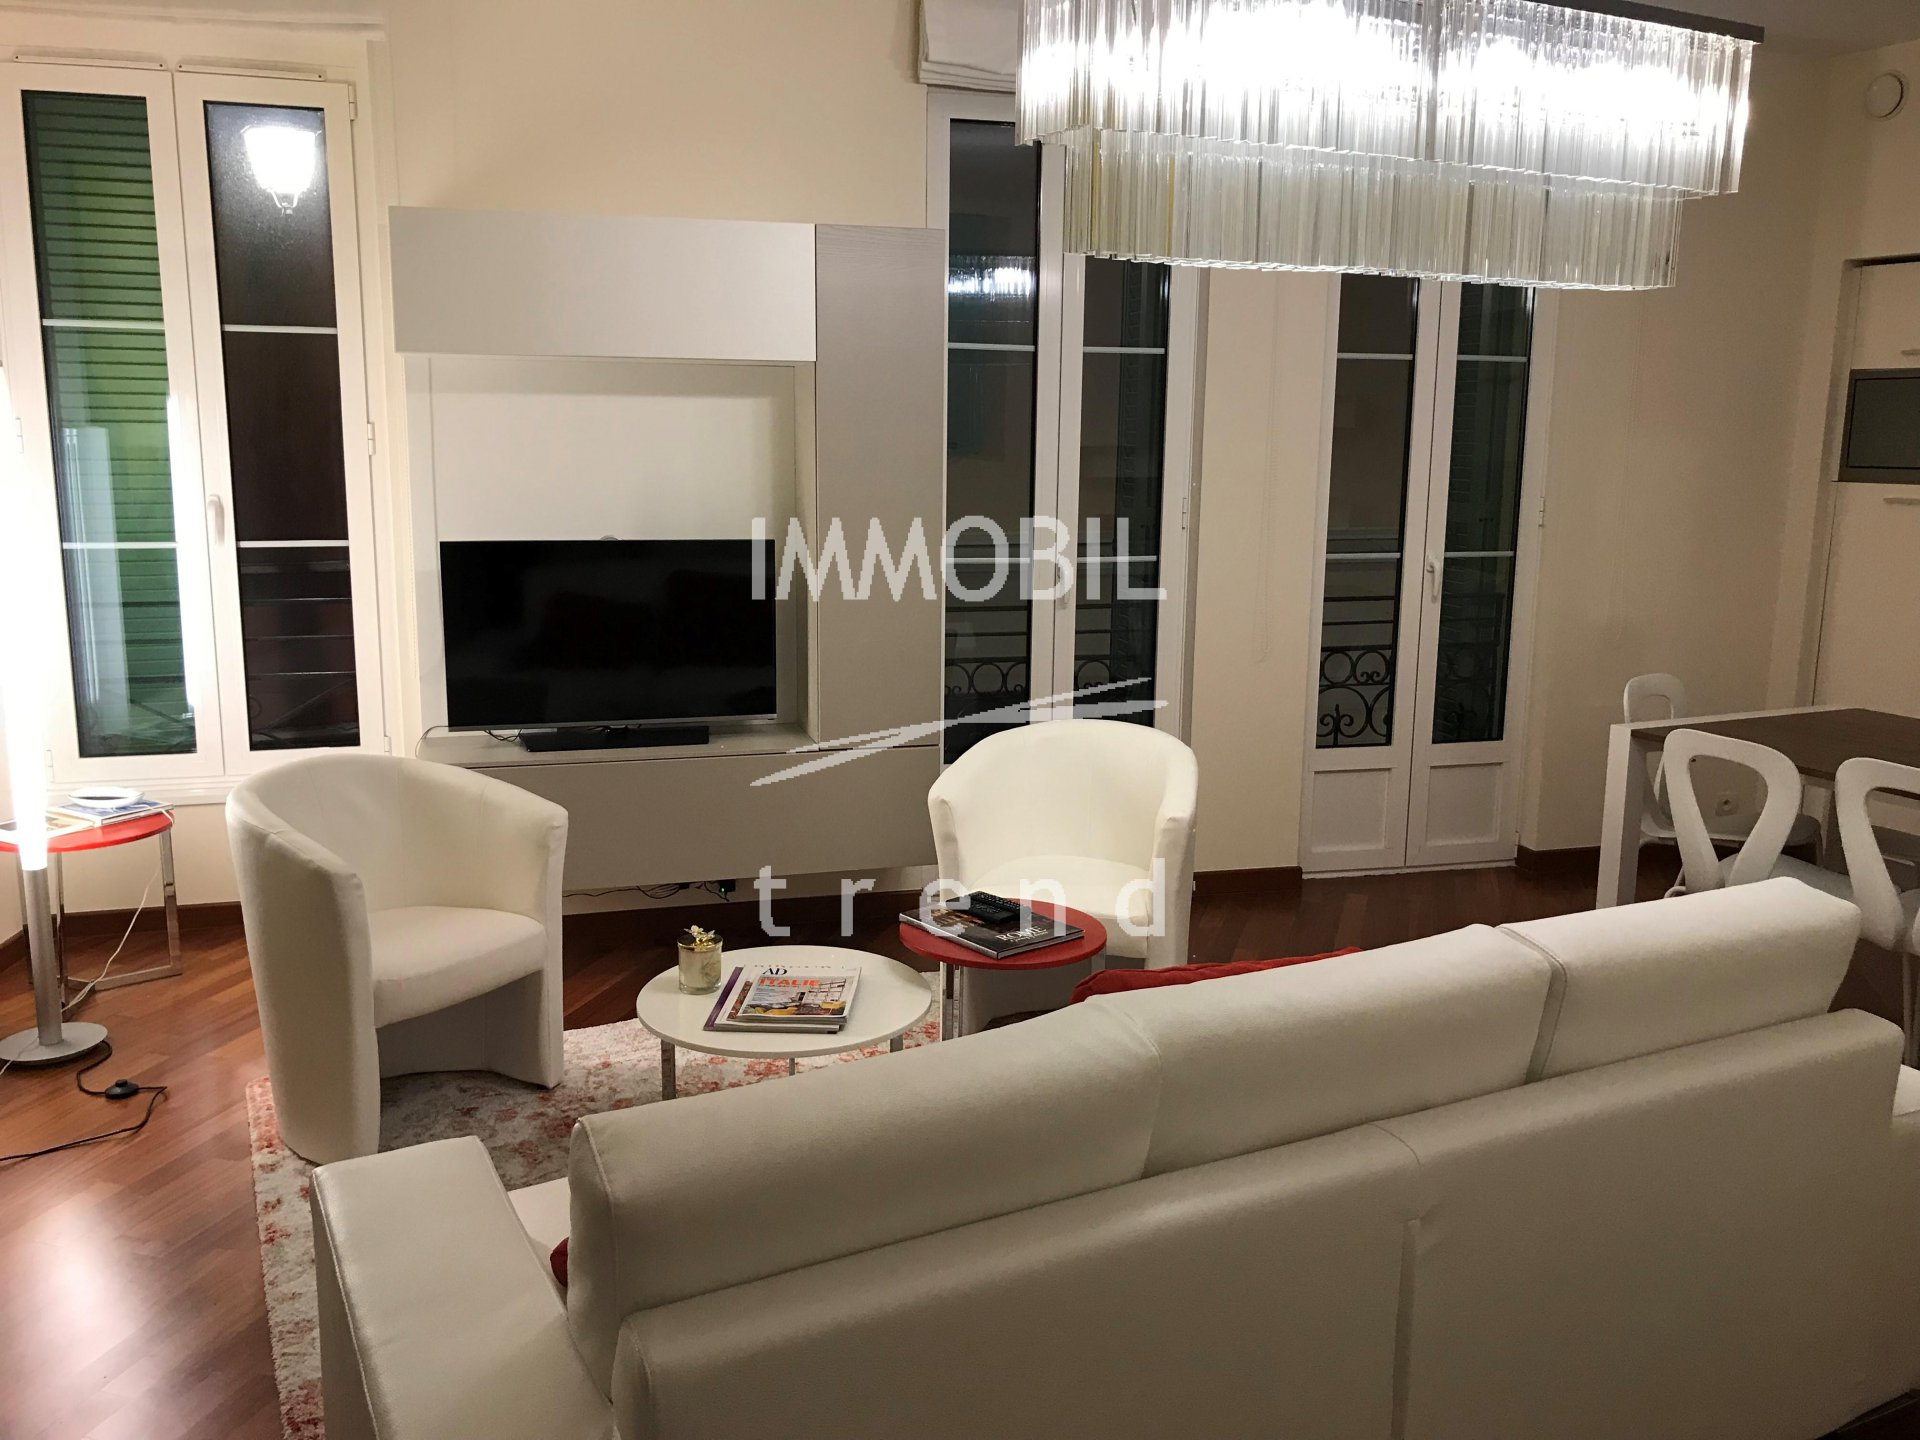 IMMOBILIER MENTON  ZONE PIETONNE LUXUEUX 2 PIECES